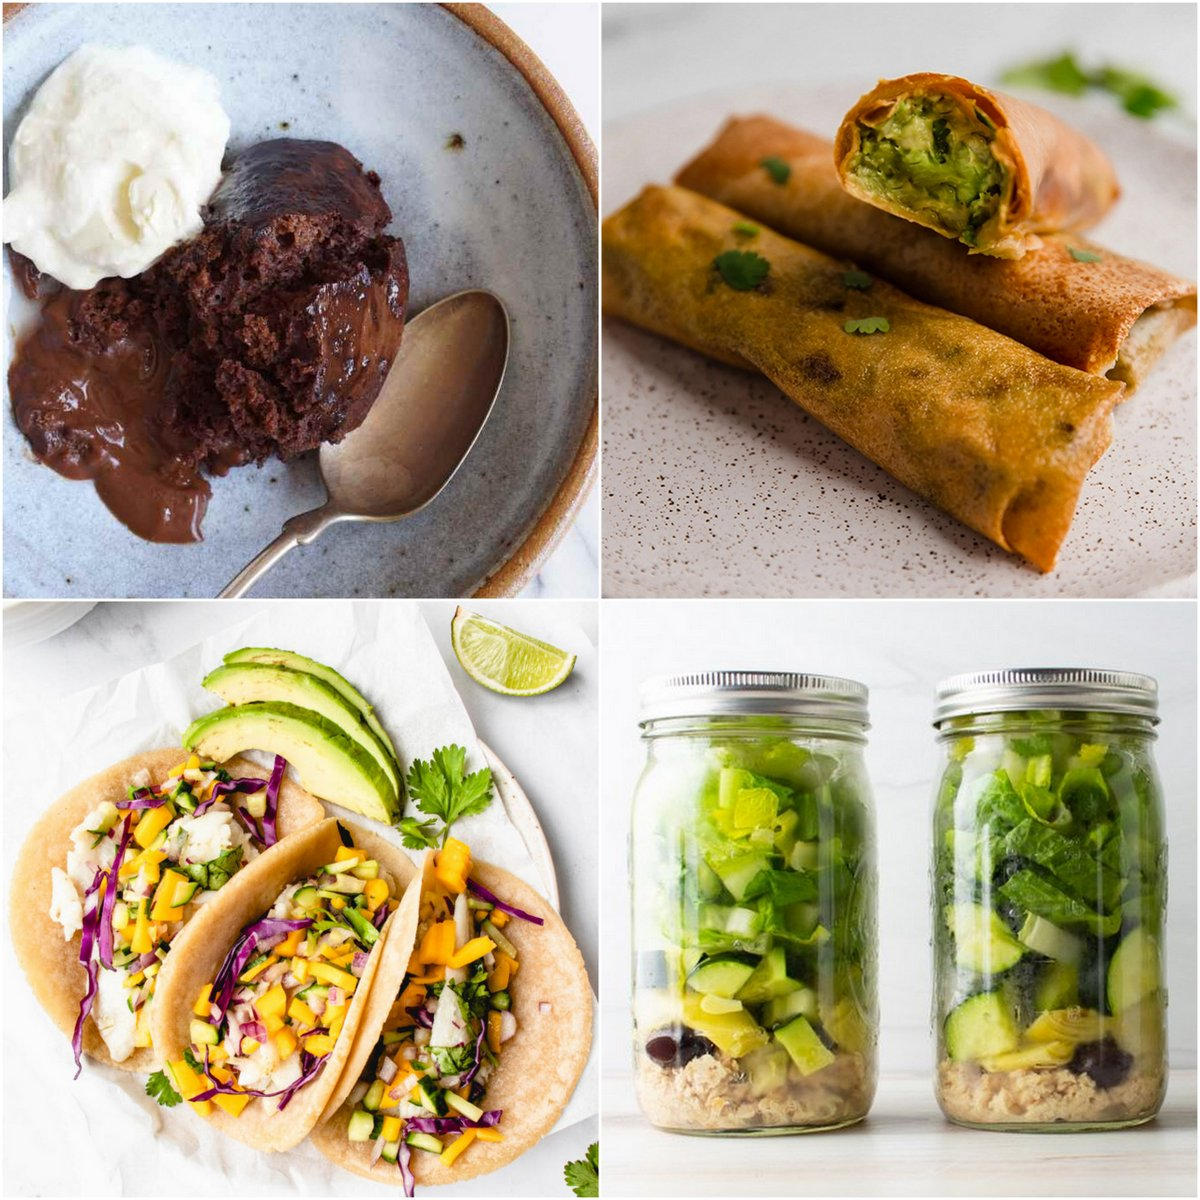 """Paleo AIP Recipe Roundtable #369   Phoenix Helix - *Featured Recipes: Self-Saucing """"Chocolate"""" Pudding, Air Fryer Avocado Egg Rolls, Fish Tacos, and Mason Jar Greek Salads."""